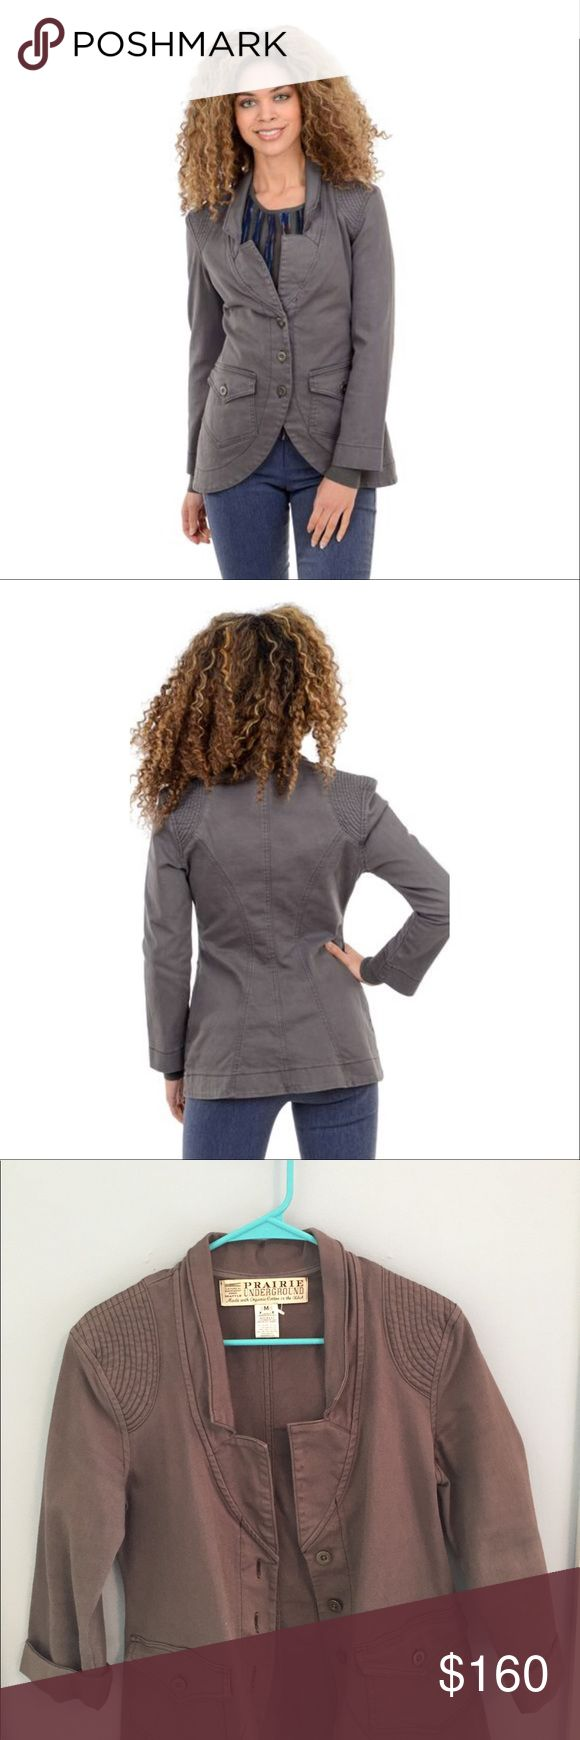 "Prairie Underground Vernacular Blazer, Dior Grey Still being sold online at Evie Lou for $220! Size medium. Made with organic cotton in the USA. ""Tough-girl chic at its finest, Vernacular is beautifully tailored for a close fit. Done in an organic-cotton twill, this jacket has a split lapel, a button-front placket and a tulip-shaped hemline. Flap pockets sit on the high hip."" Prairie Underground Jackets & Coats Blazers"